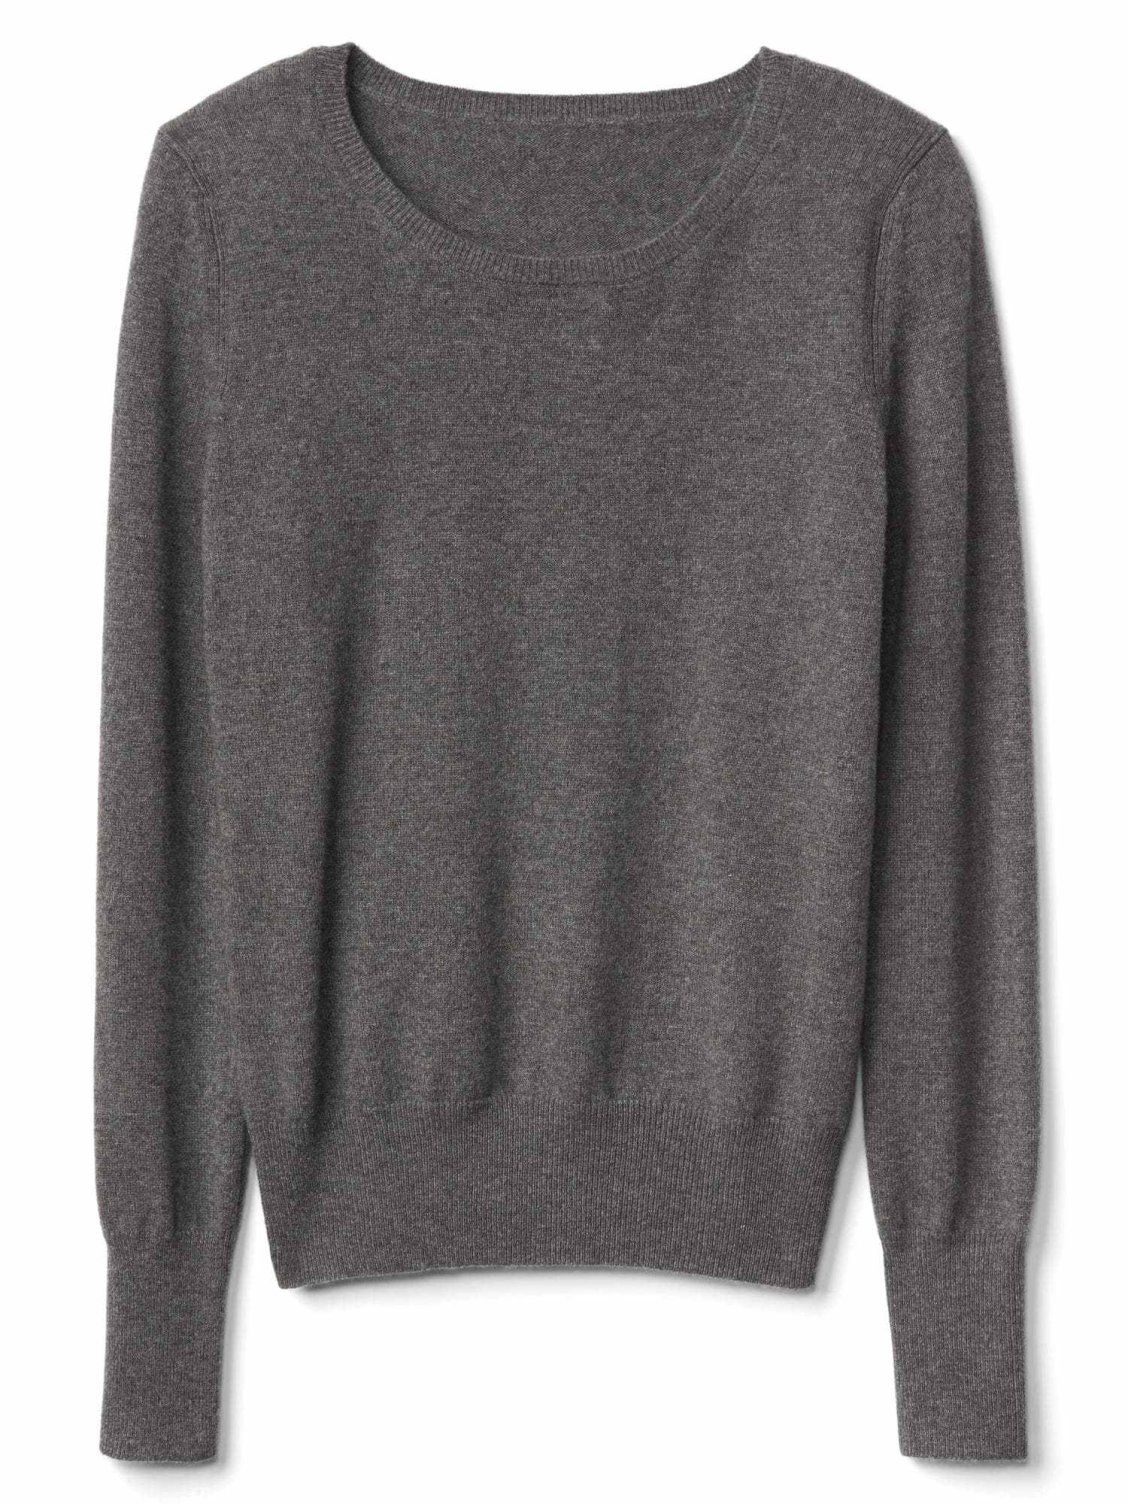 Where to Shop for Chic and Affordable Cashmere Sweaters | Cashmere ...